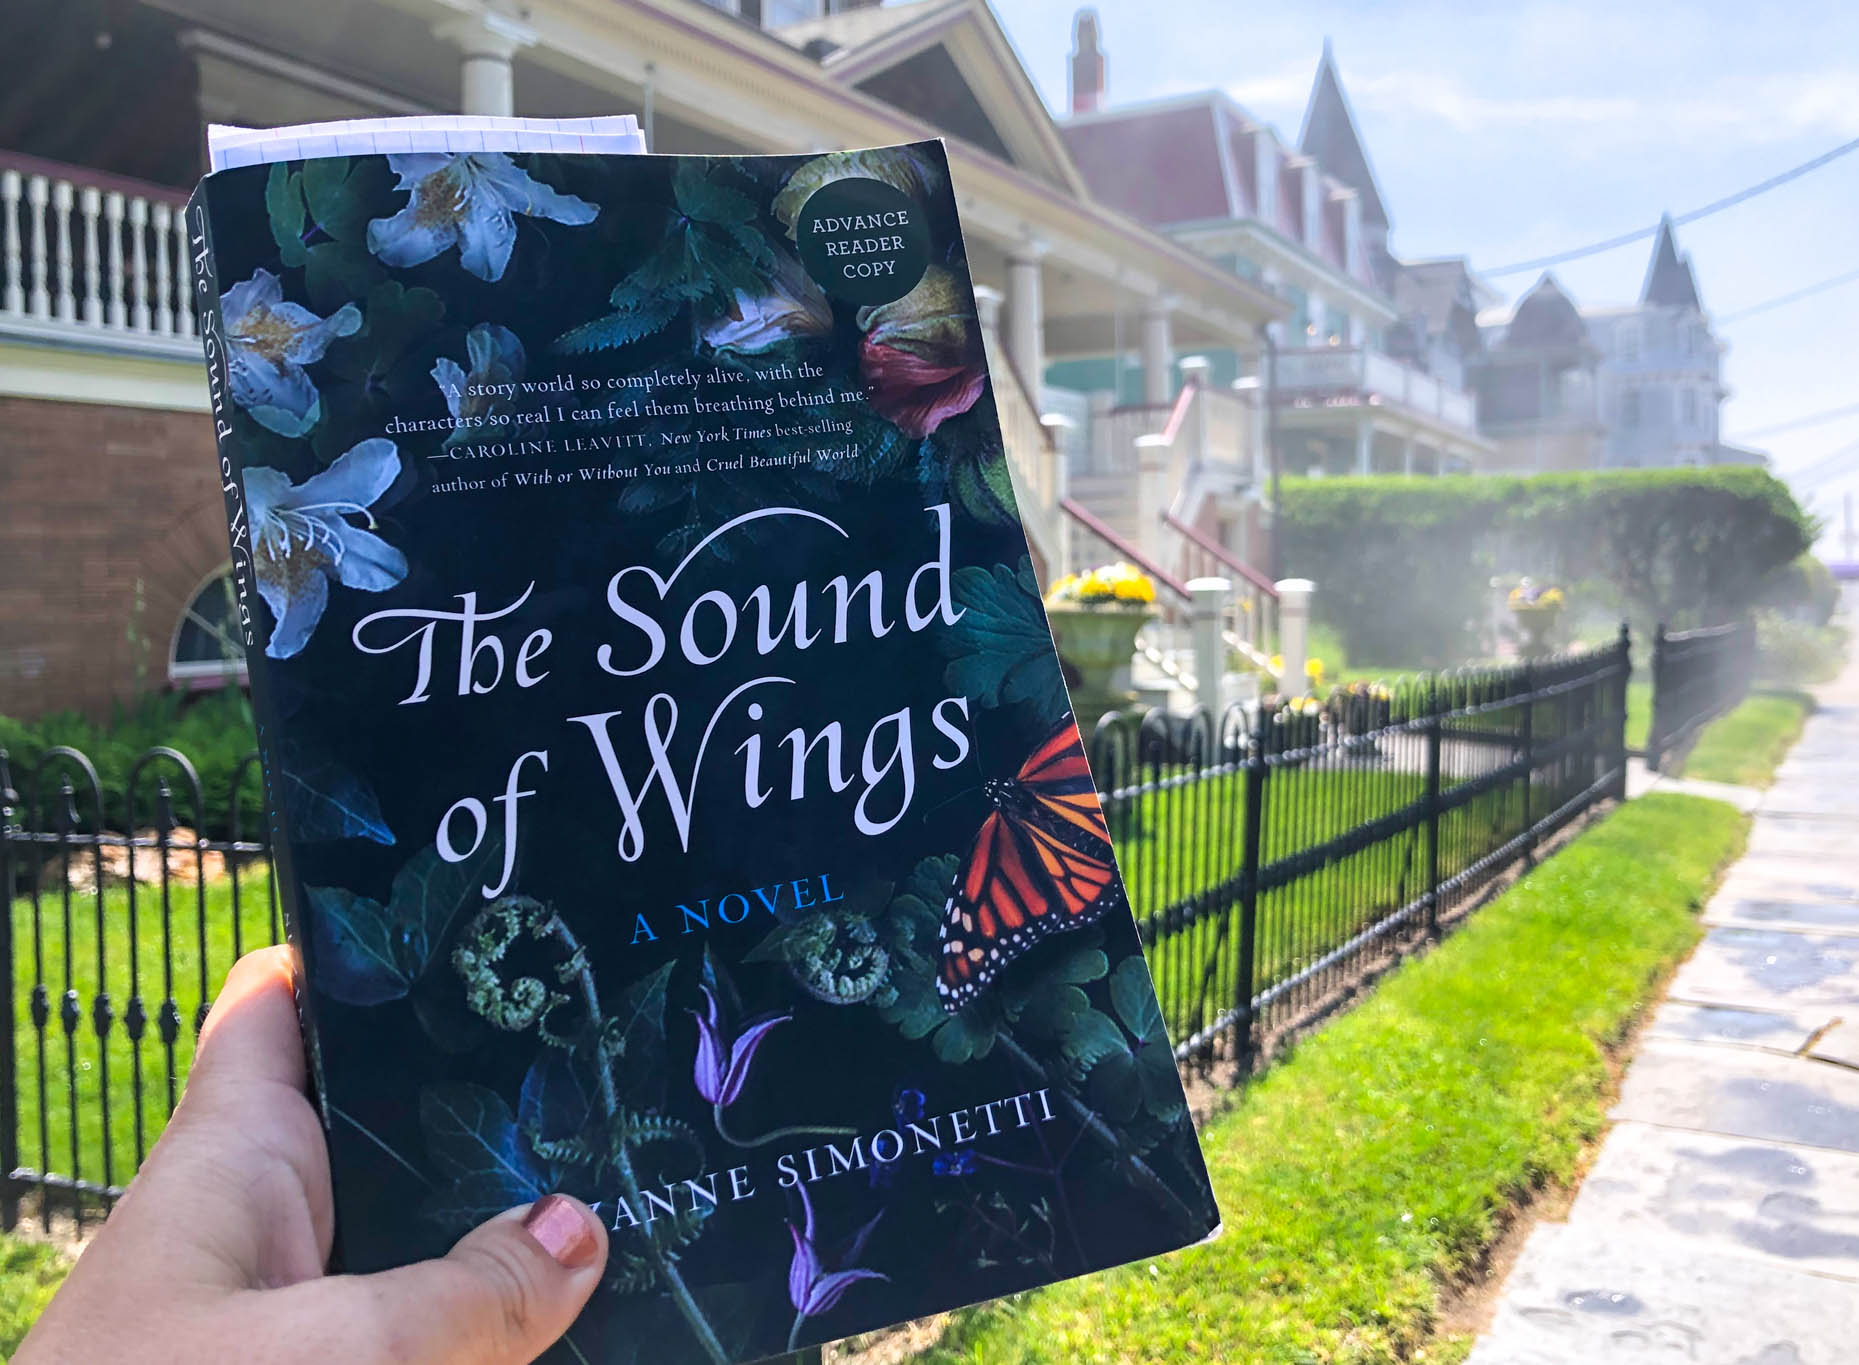 The fog burning off along Ocean Street and the book The Sound Of Wings